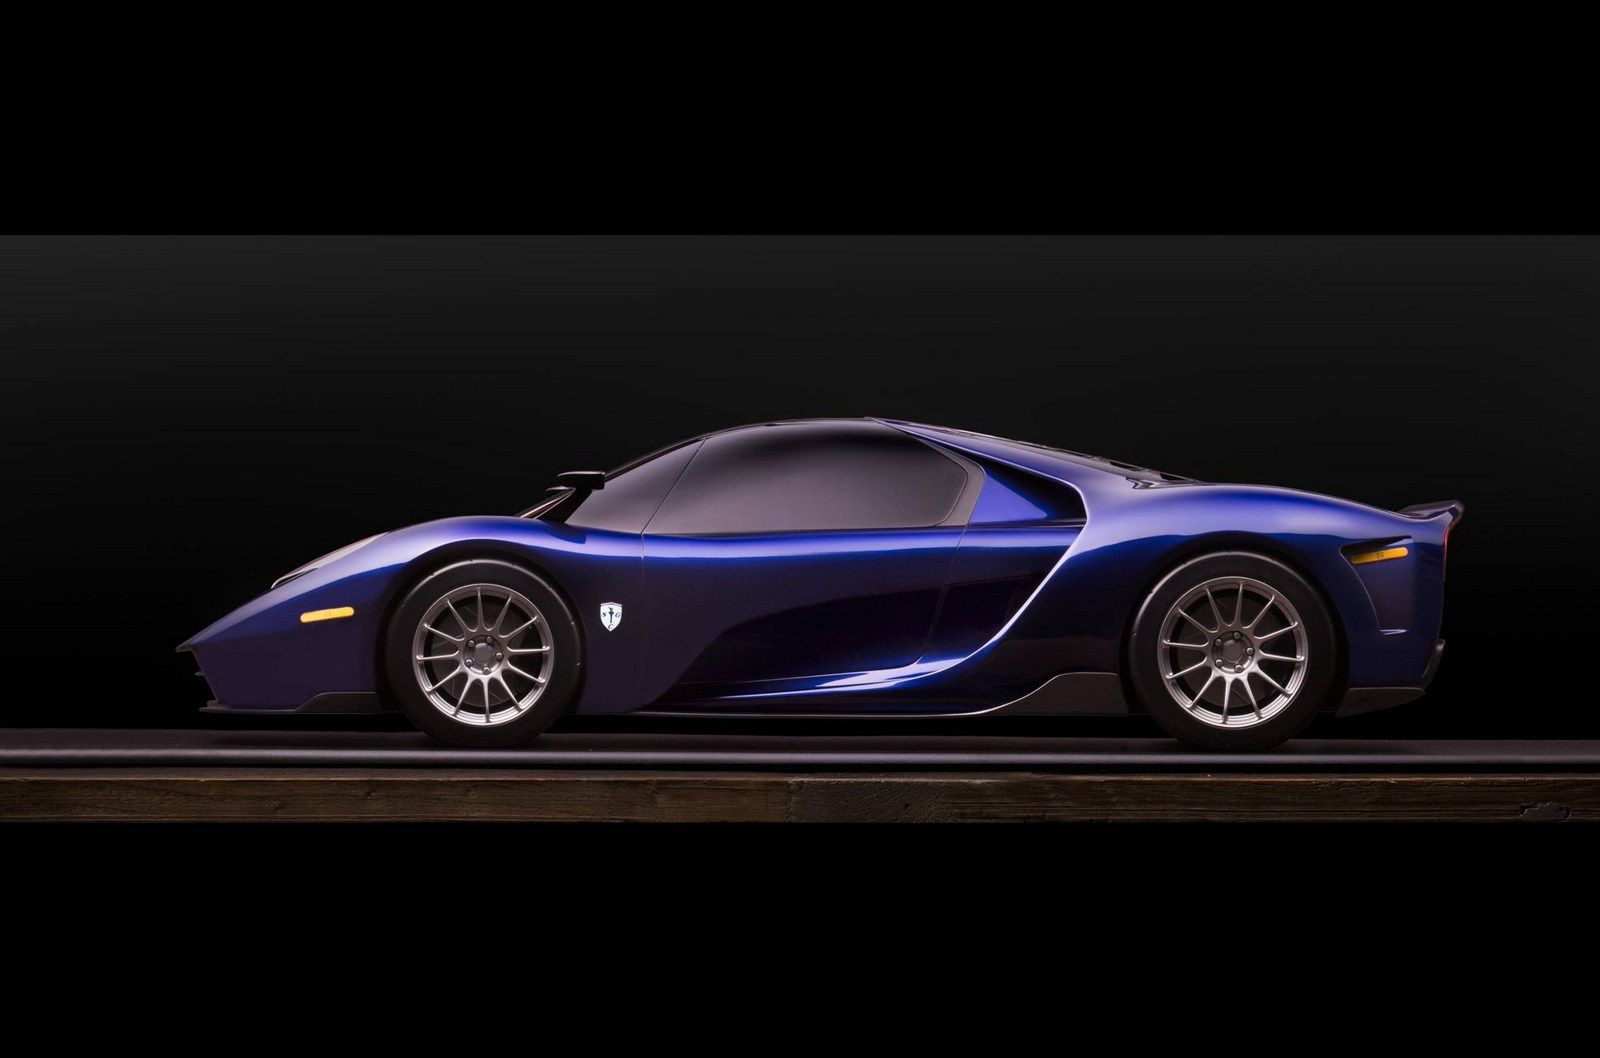 SCG 004S Supercar Unveiled With 650 HP And $400K Price Tag